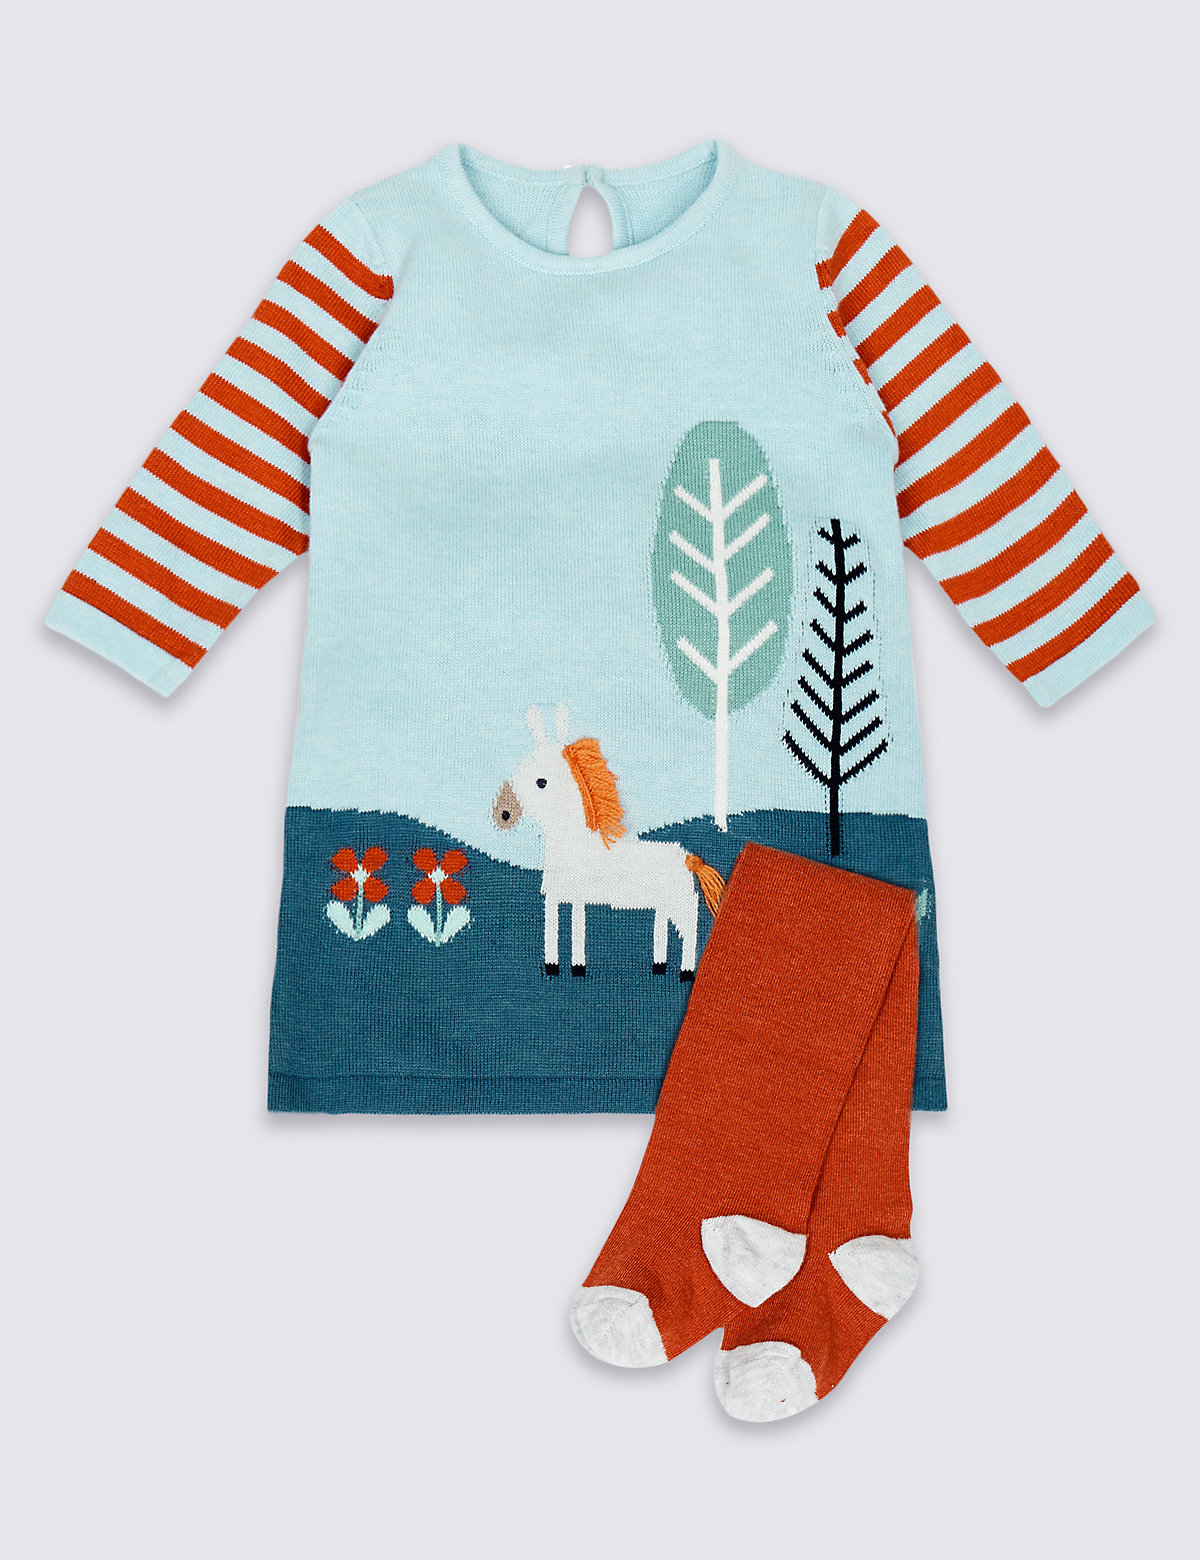 2 Piece Knitted Baby Dress with Tights